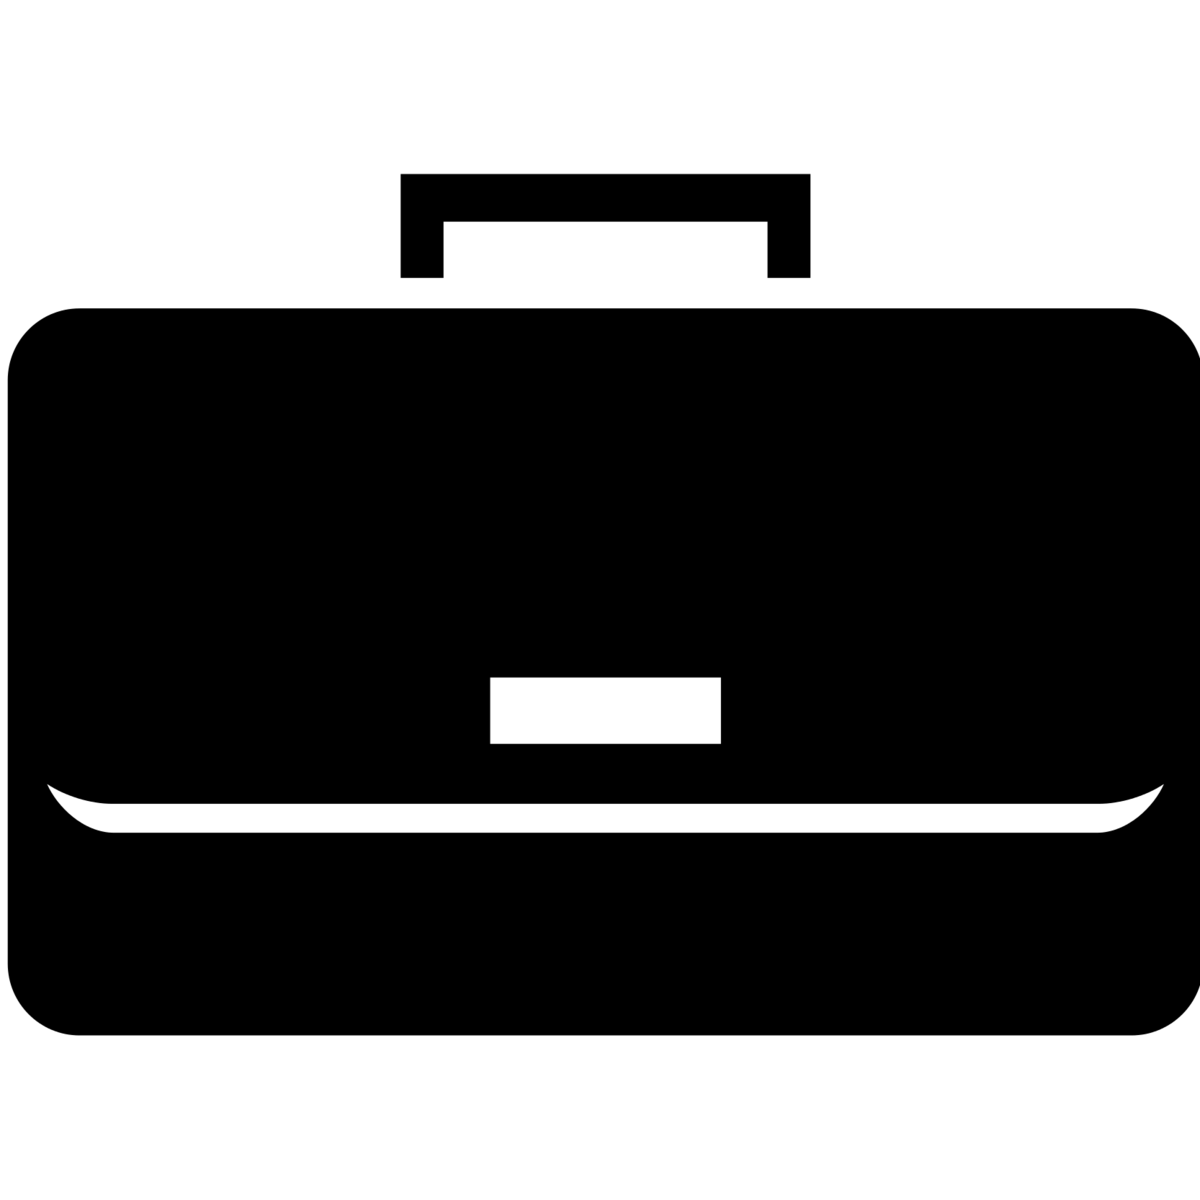 Briefcases clipart clipart download Free Business Briefcase Cliparts, Download Free Clip Art, Free Clip ... clipart download